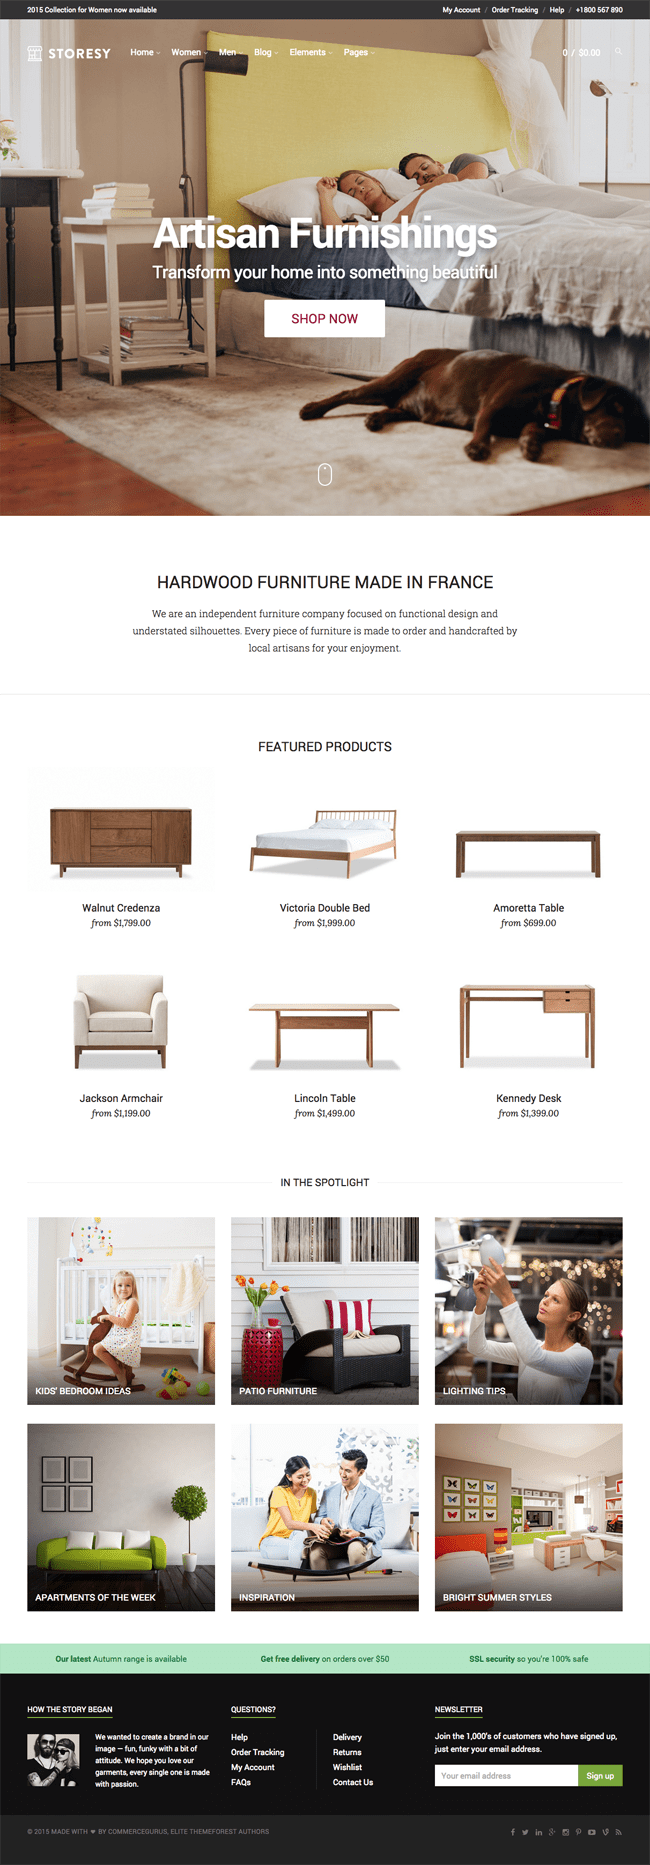 Furnishings Home Page Template